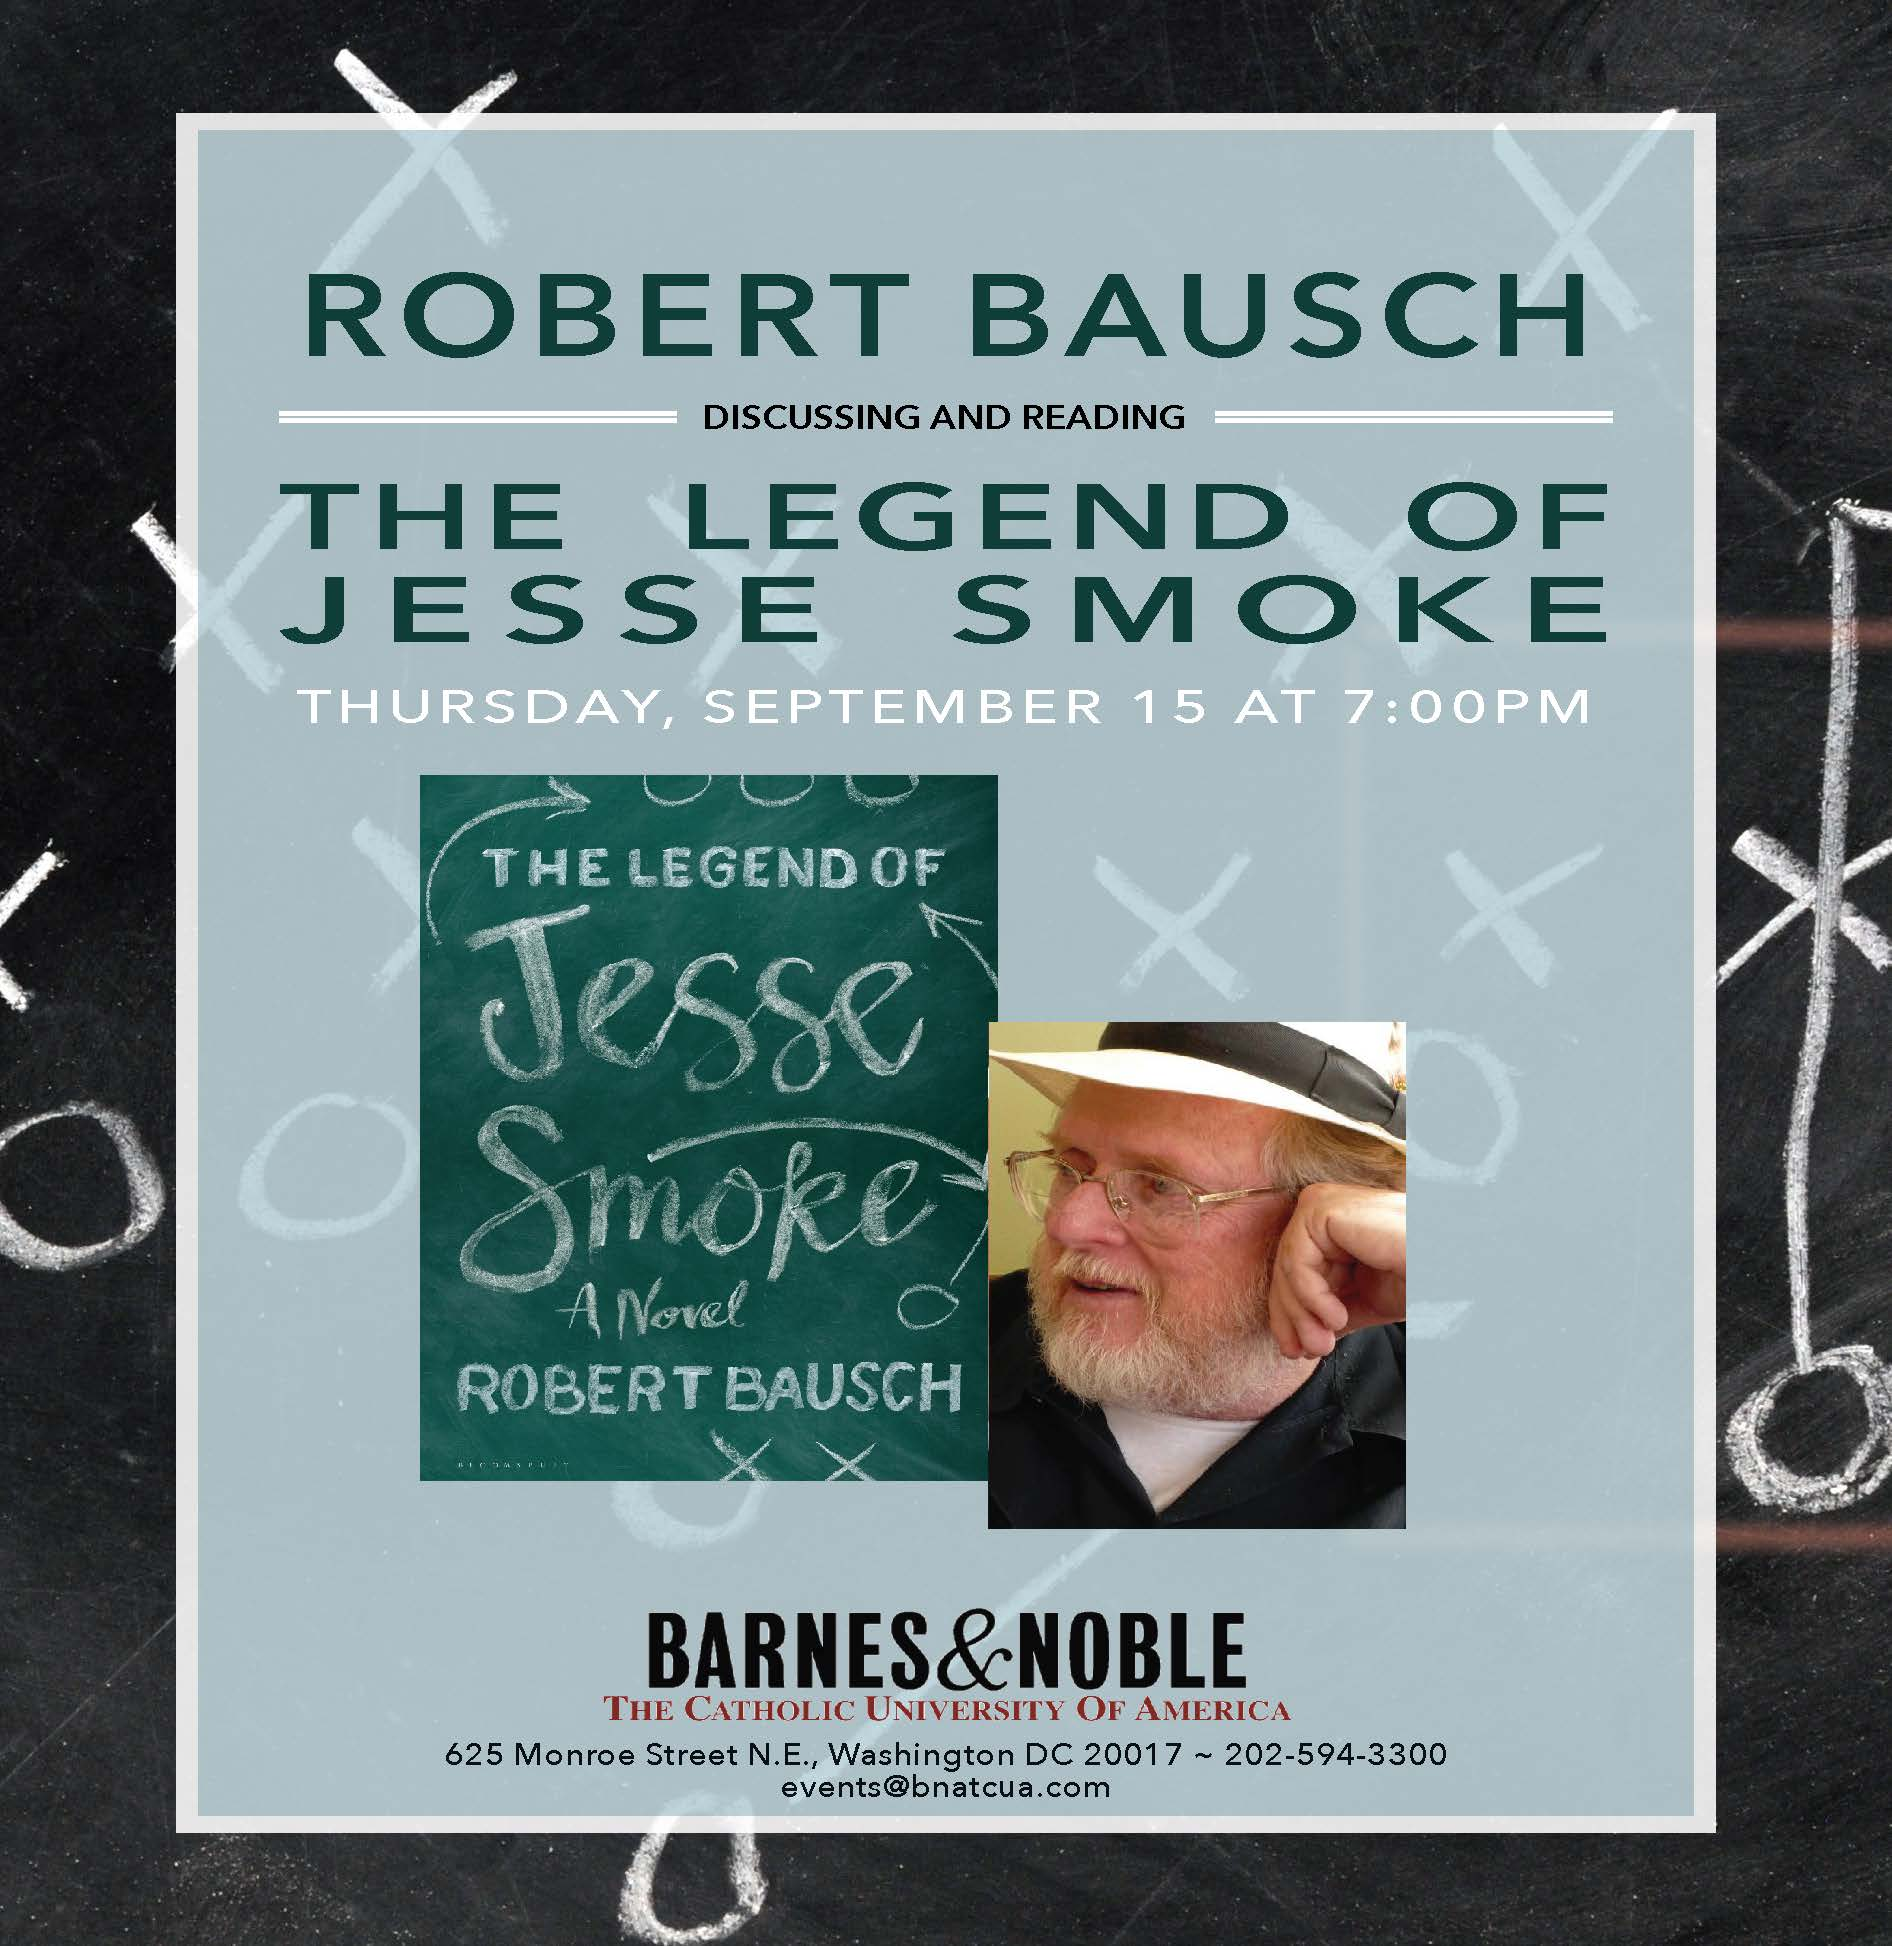 Barnes & Noble: The Legend of Jesse Smoke by Robert Bausch